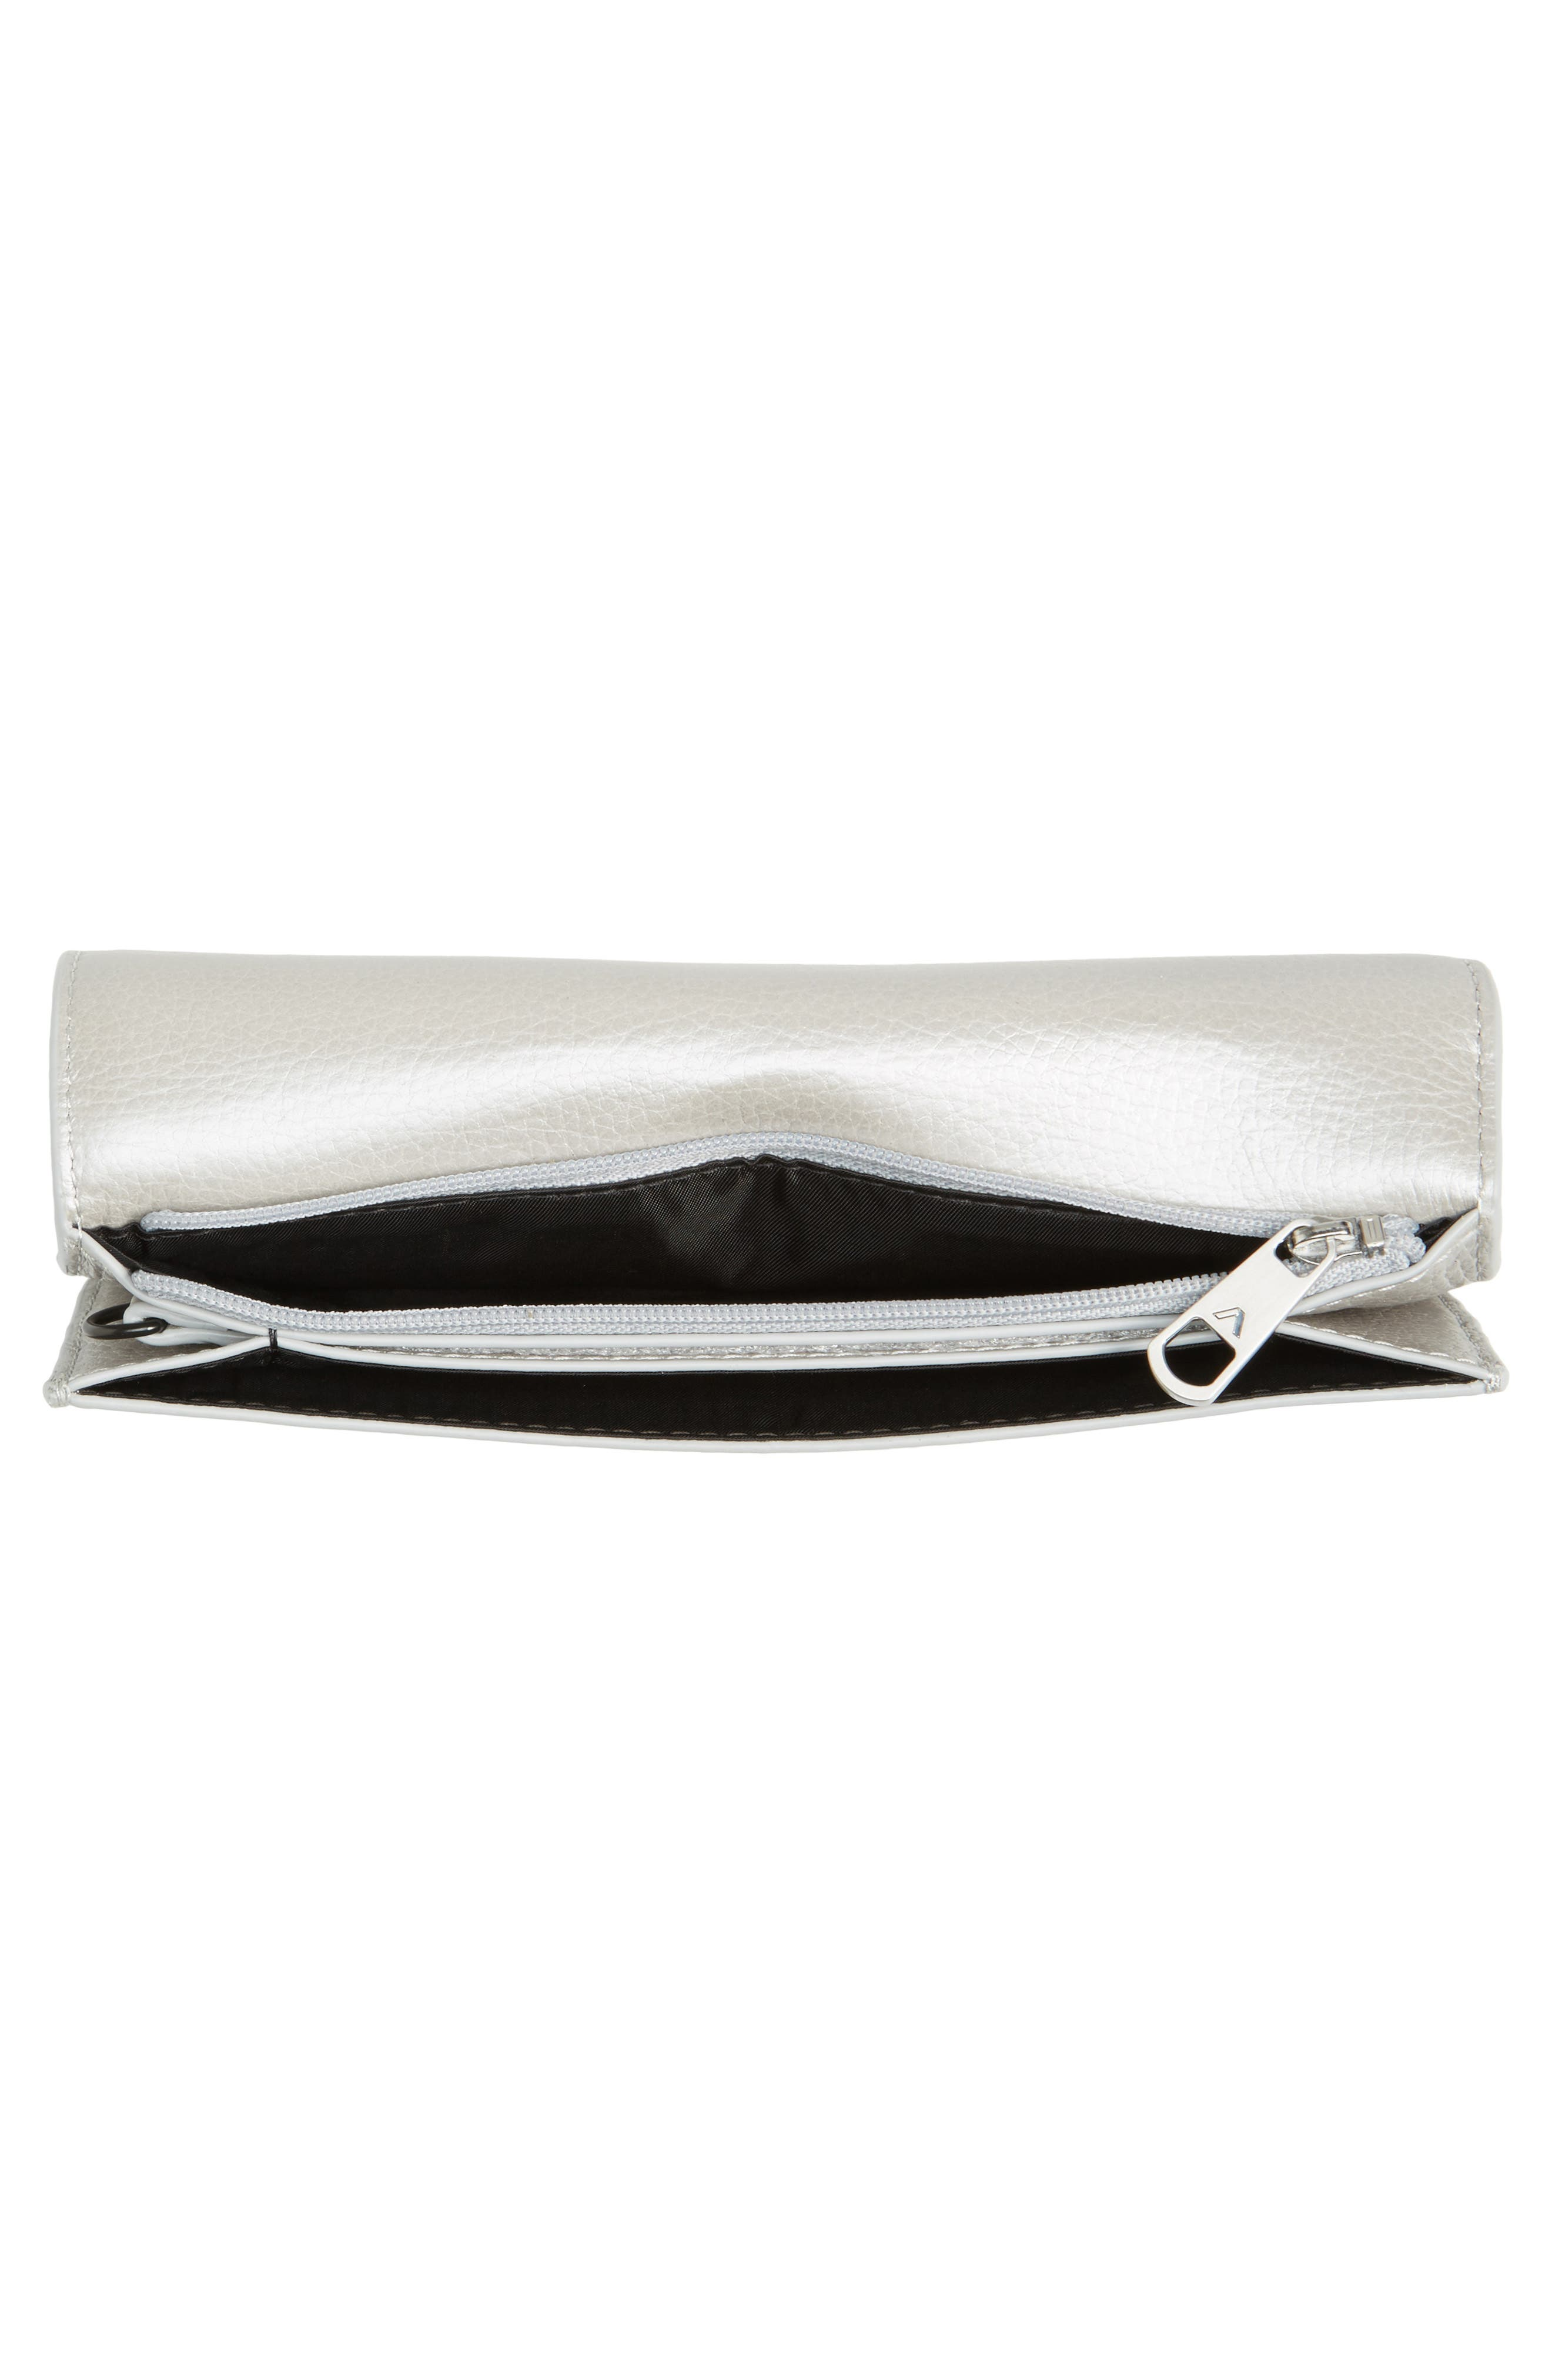 Greenwood Bristol Leather Wristlet,                             Alternate thumbnail 2, color,                             Silver